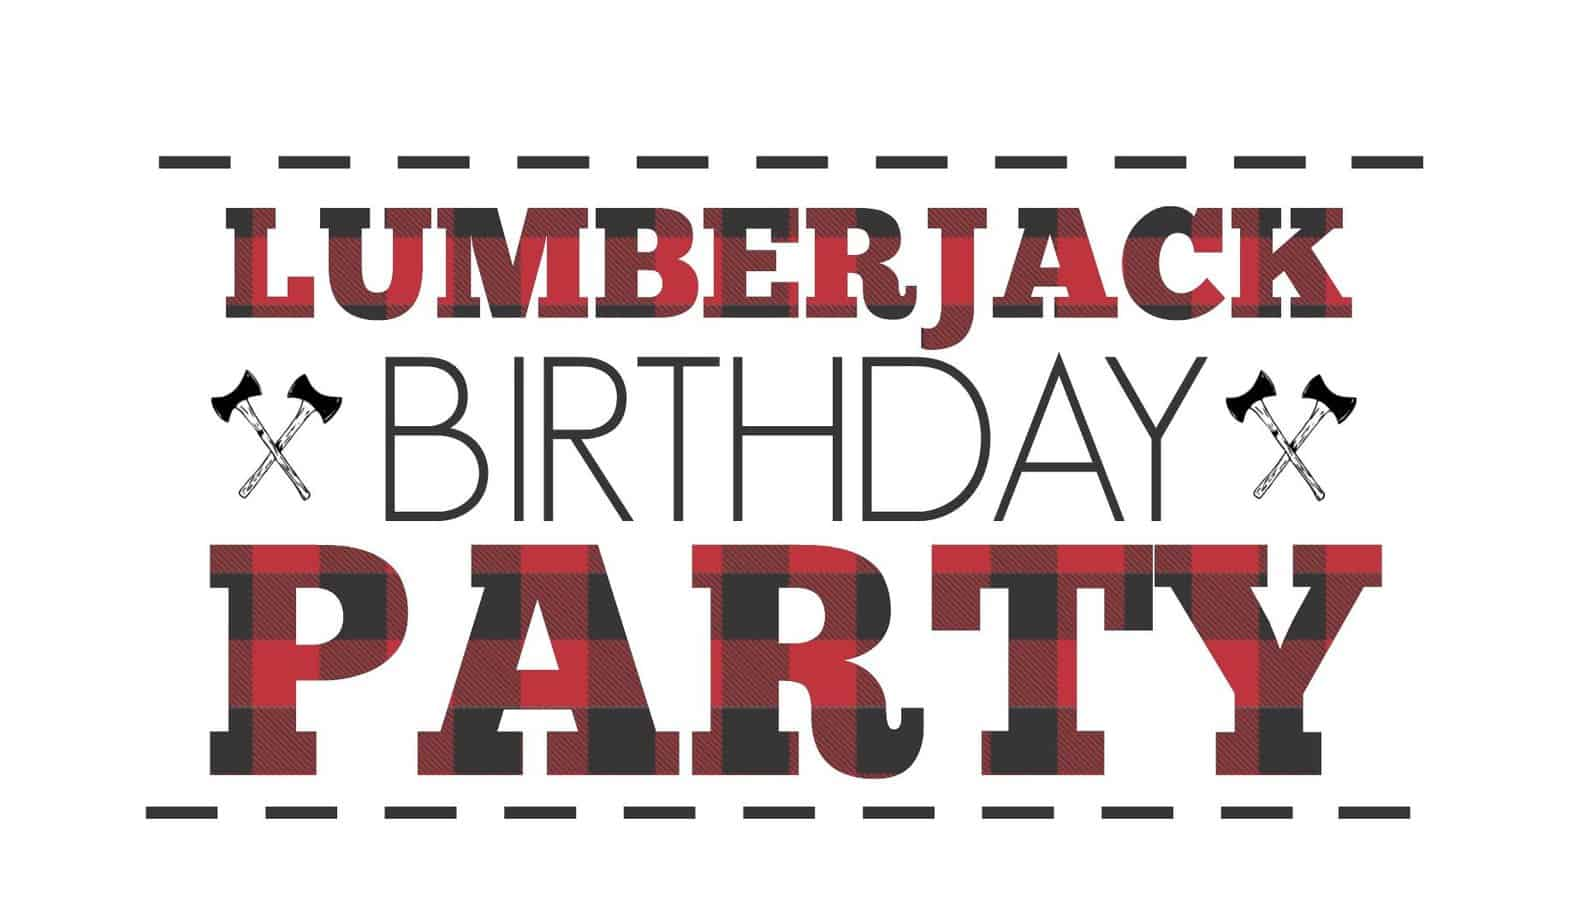 Lumberjack First Birthday Party 2